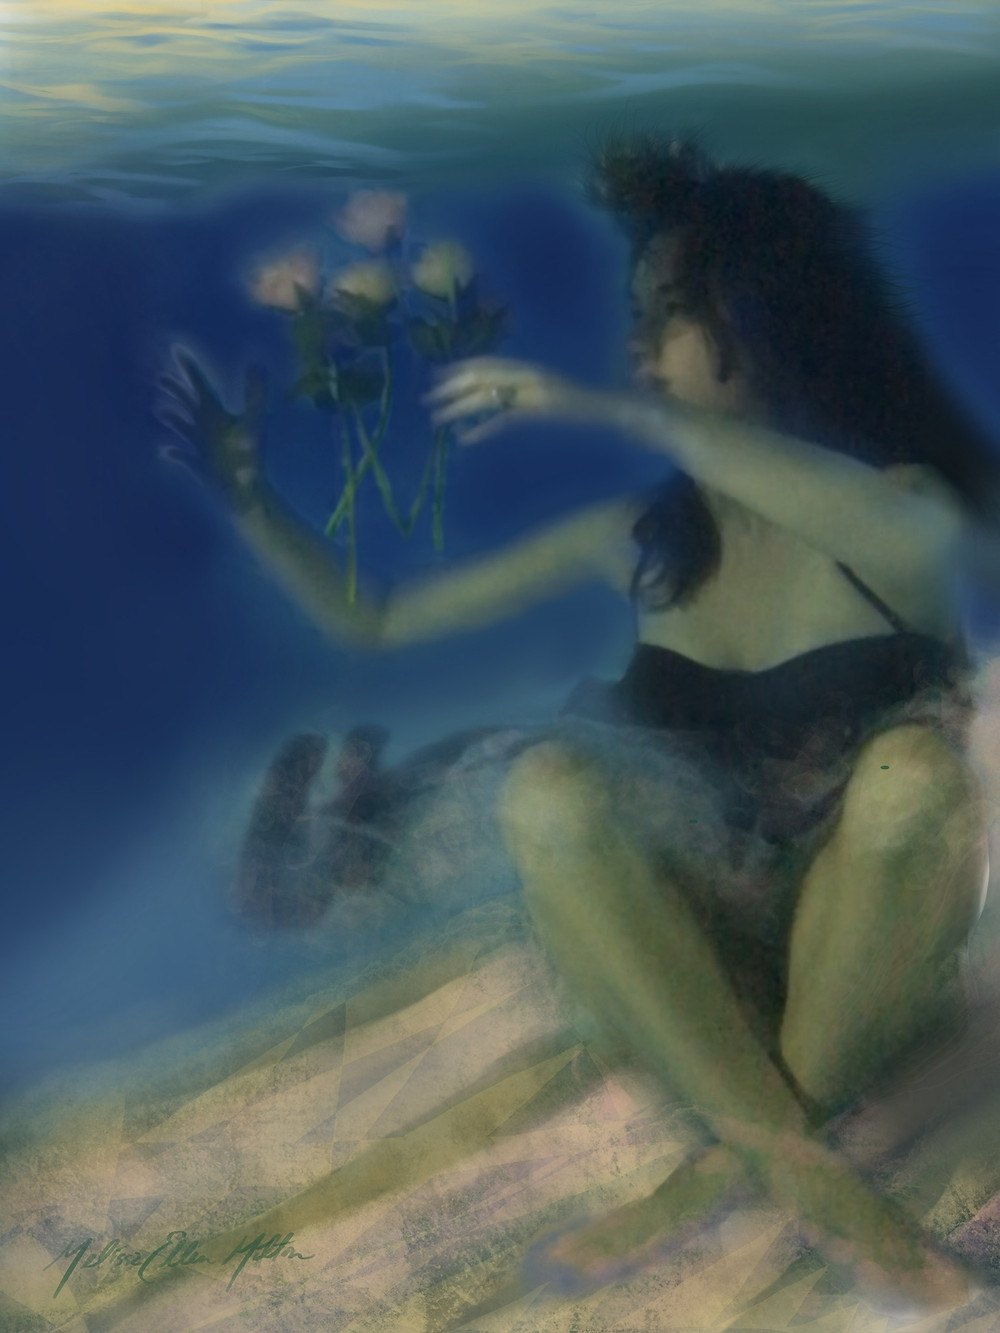 Young woman underwater with floating pink rose.